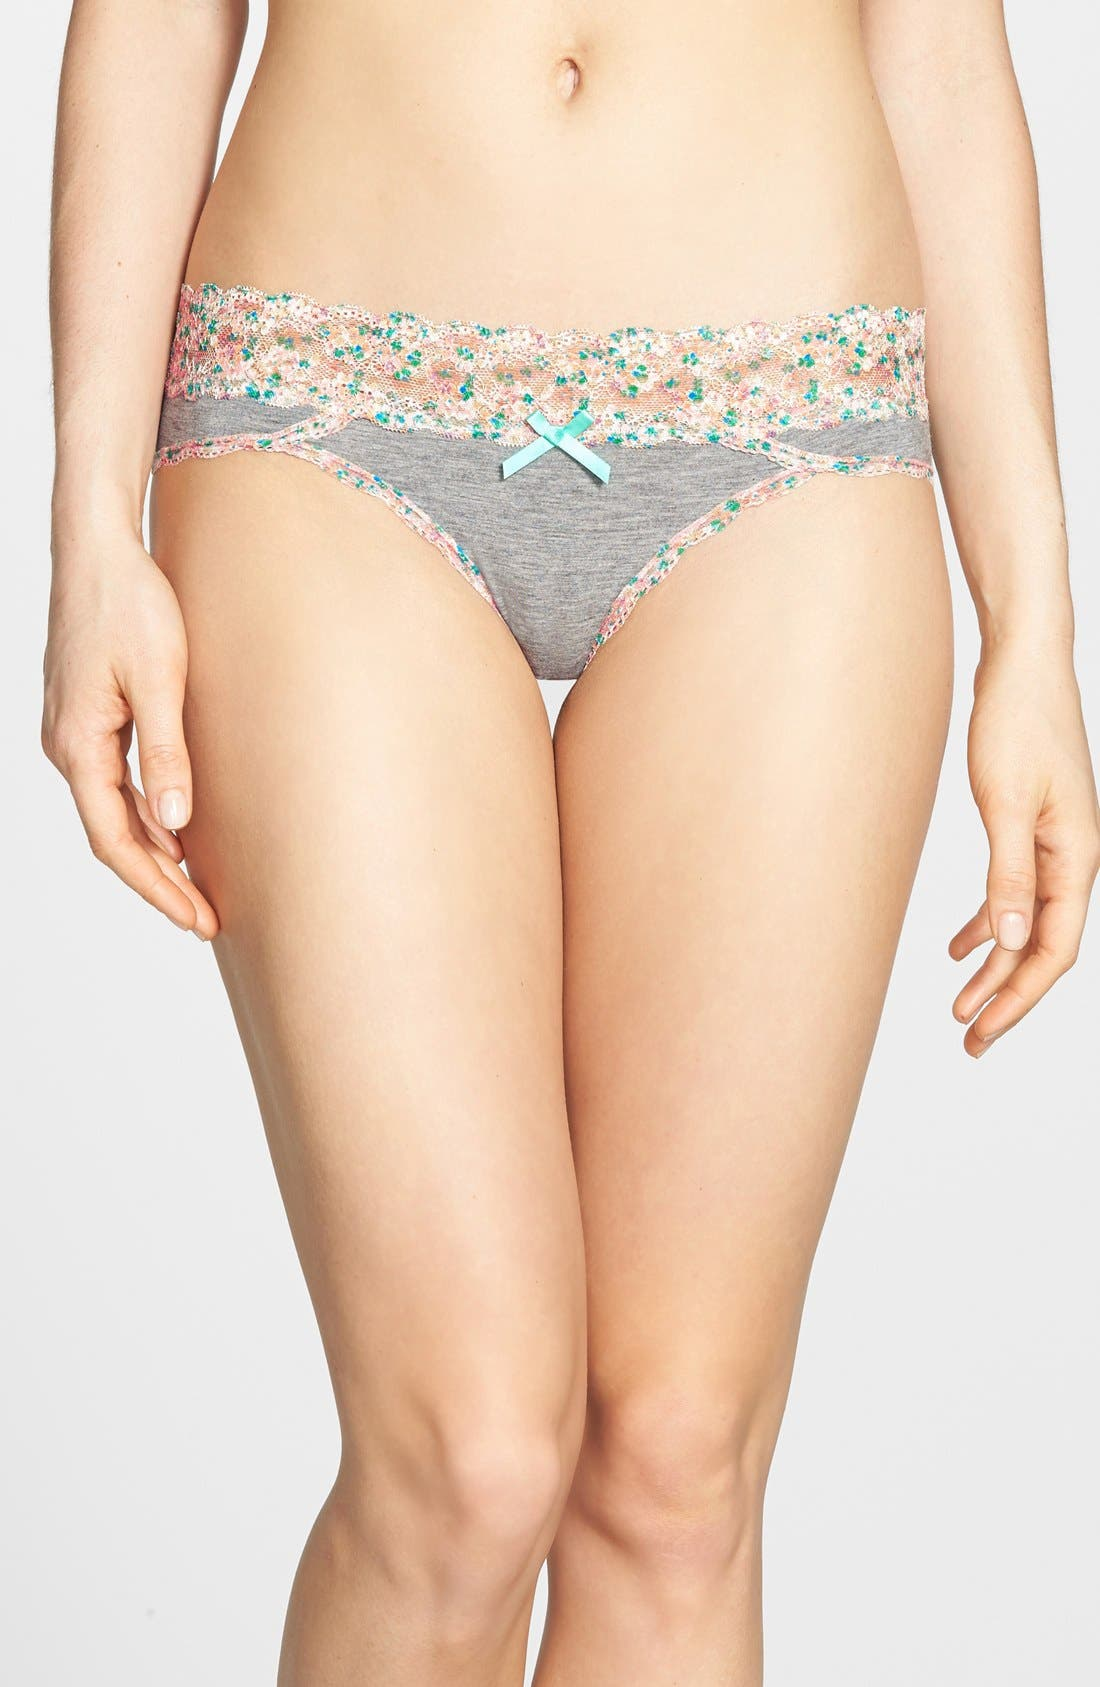 Alternate Image 1 Selected - Honeydew Intimates 'Ahna' Lace Trim Print Hipster Briefs